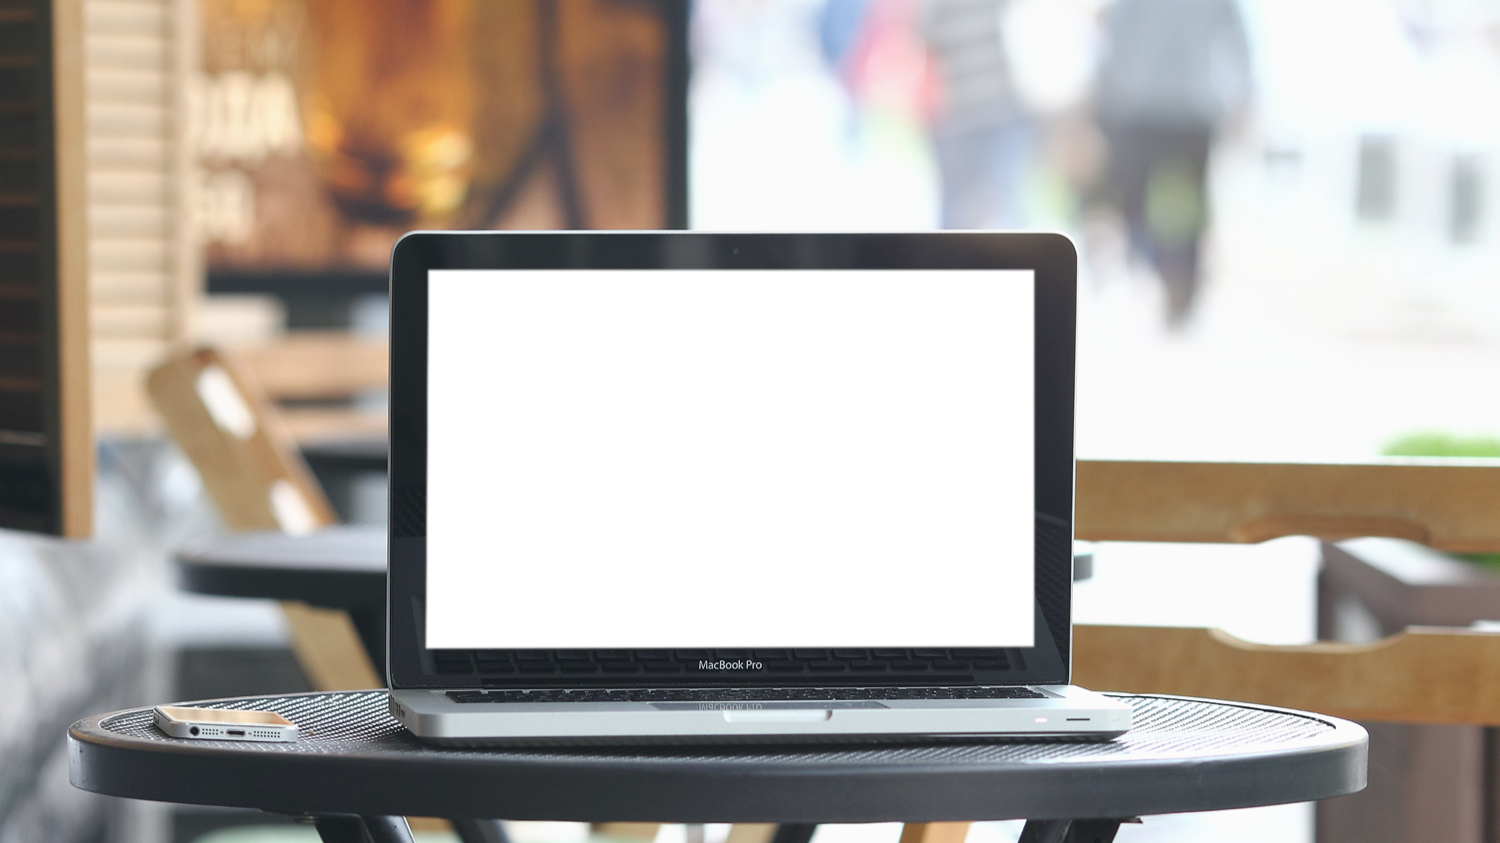 As even faster resize images on Mac